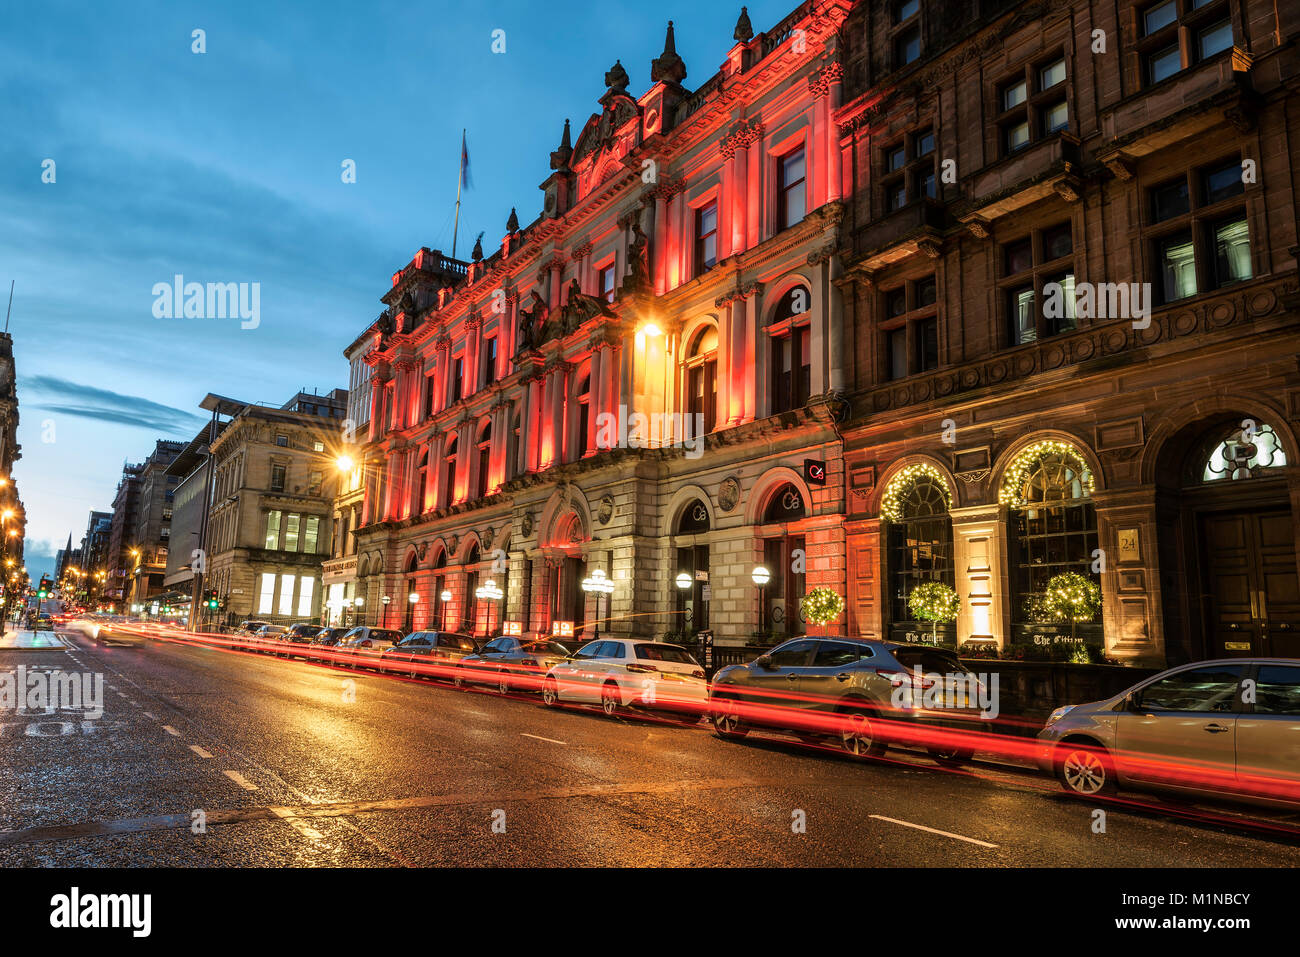 Night piocture of St. Vincent PLace in central Glasgow taken on New Year's Day. - Stock Image